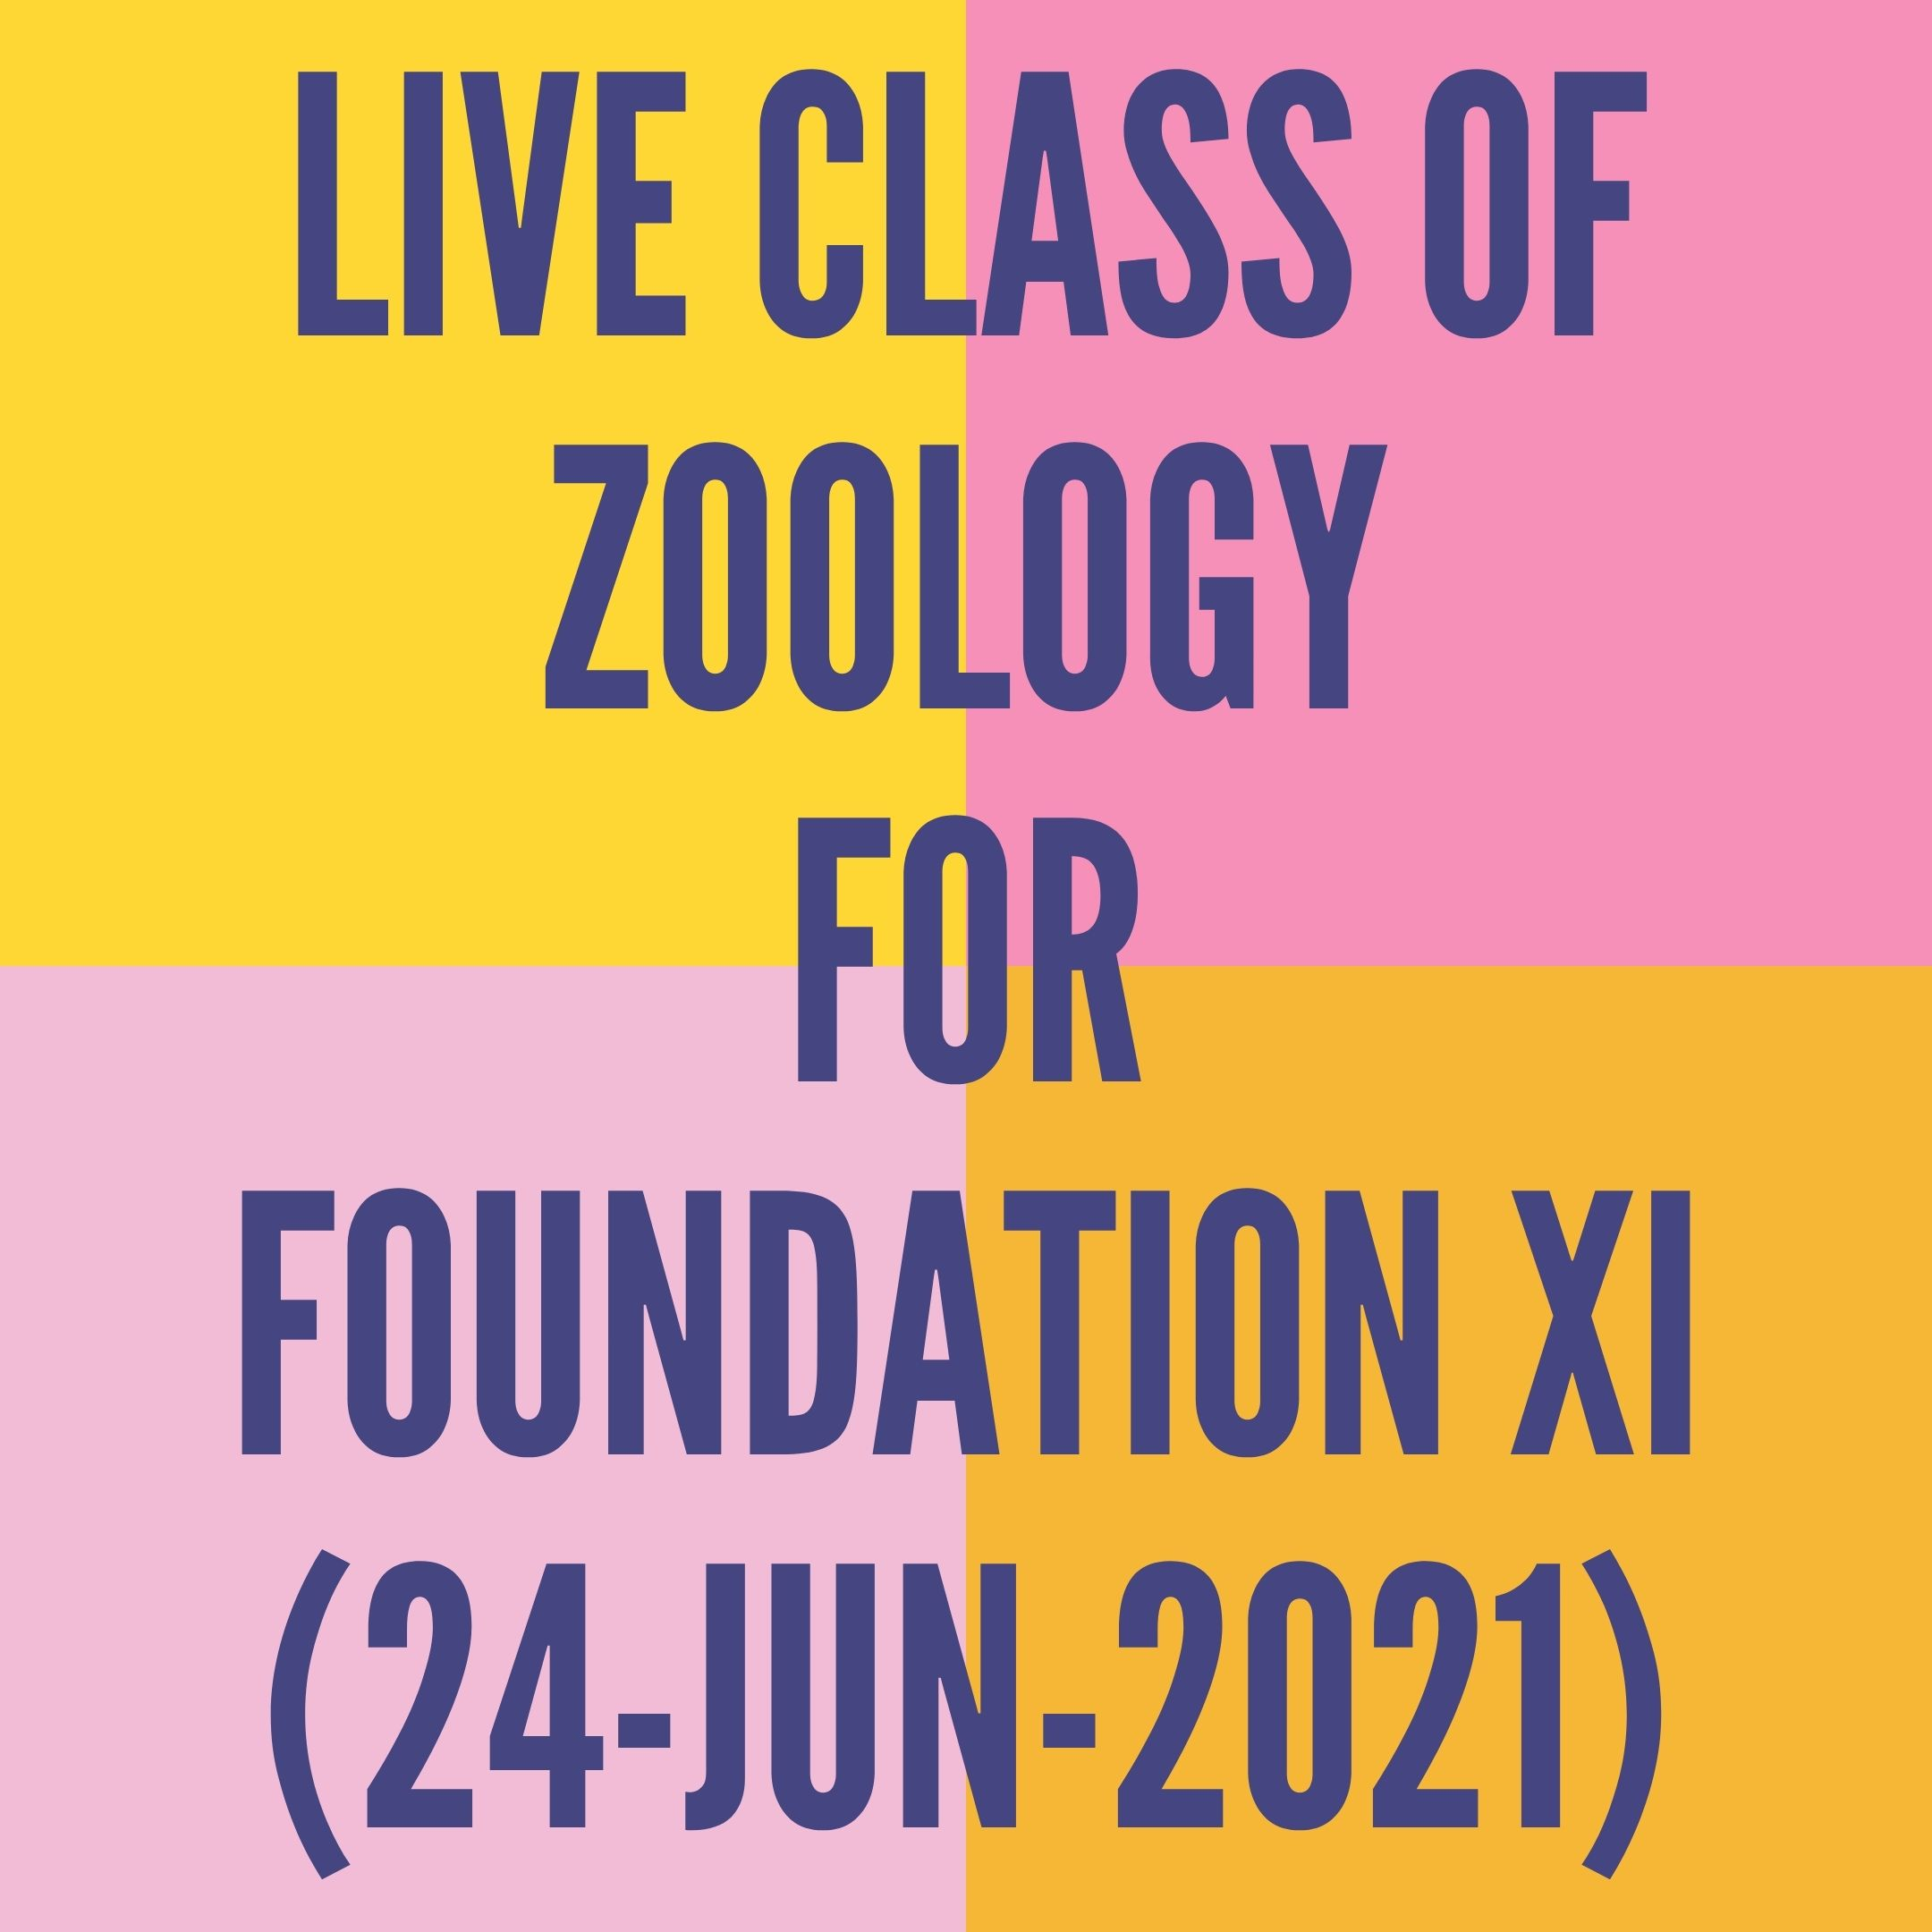 LIVE CLASS OF ZOOLOGY FOR FOUNDATION XI (24-JUN-2021) DIGESTIVE SYSTEM